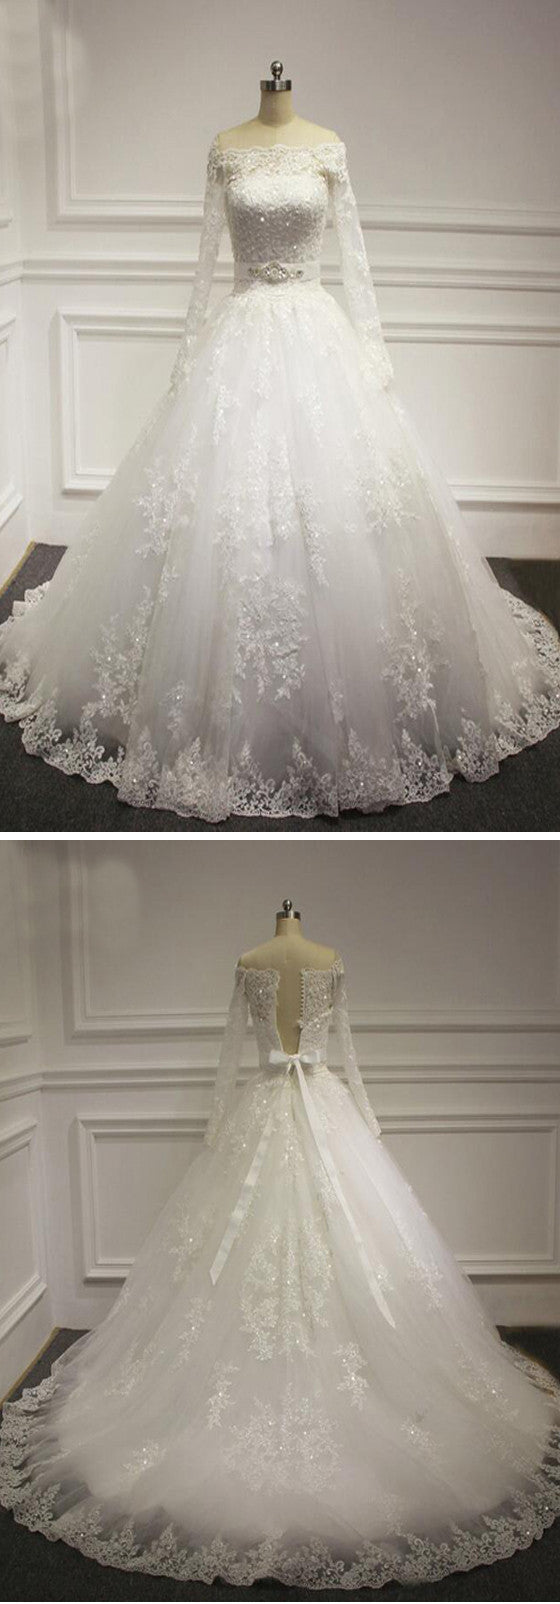 Vintage Sabrina Neck Long Illusion Sleeve White Lace Up Back Beads Ball Gown Wedding Party Dresses, WD0029